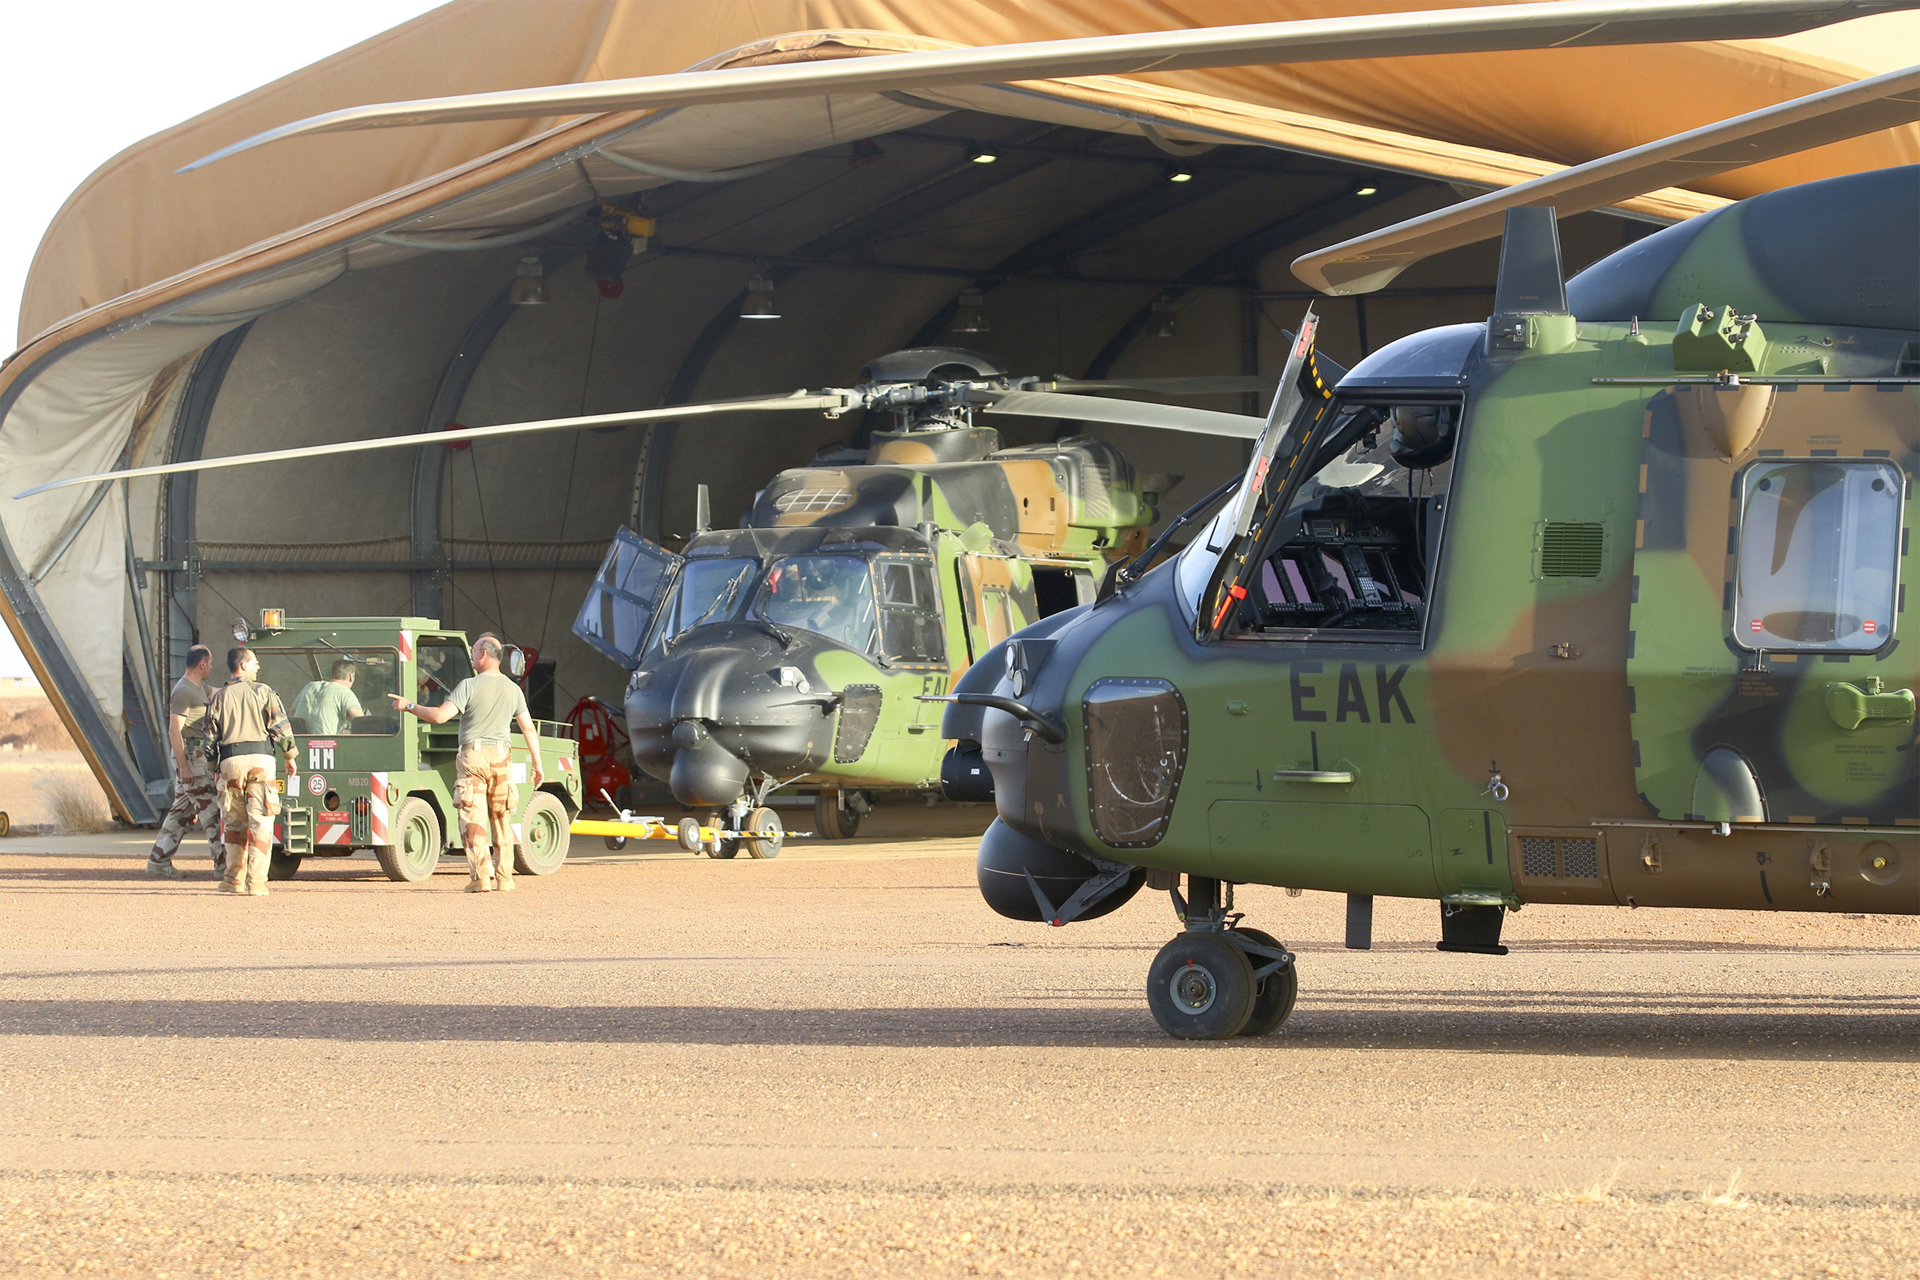 An NH90 helicopter is shown in the Sahel area.